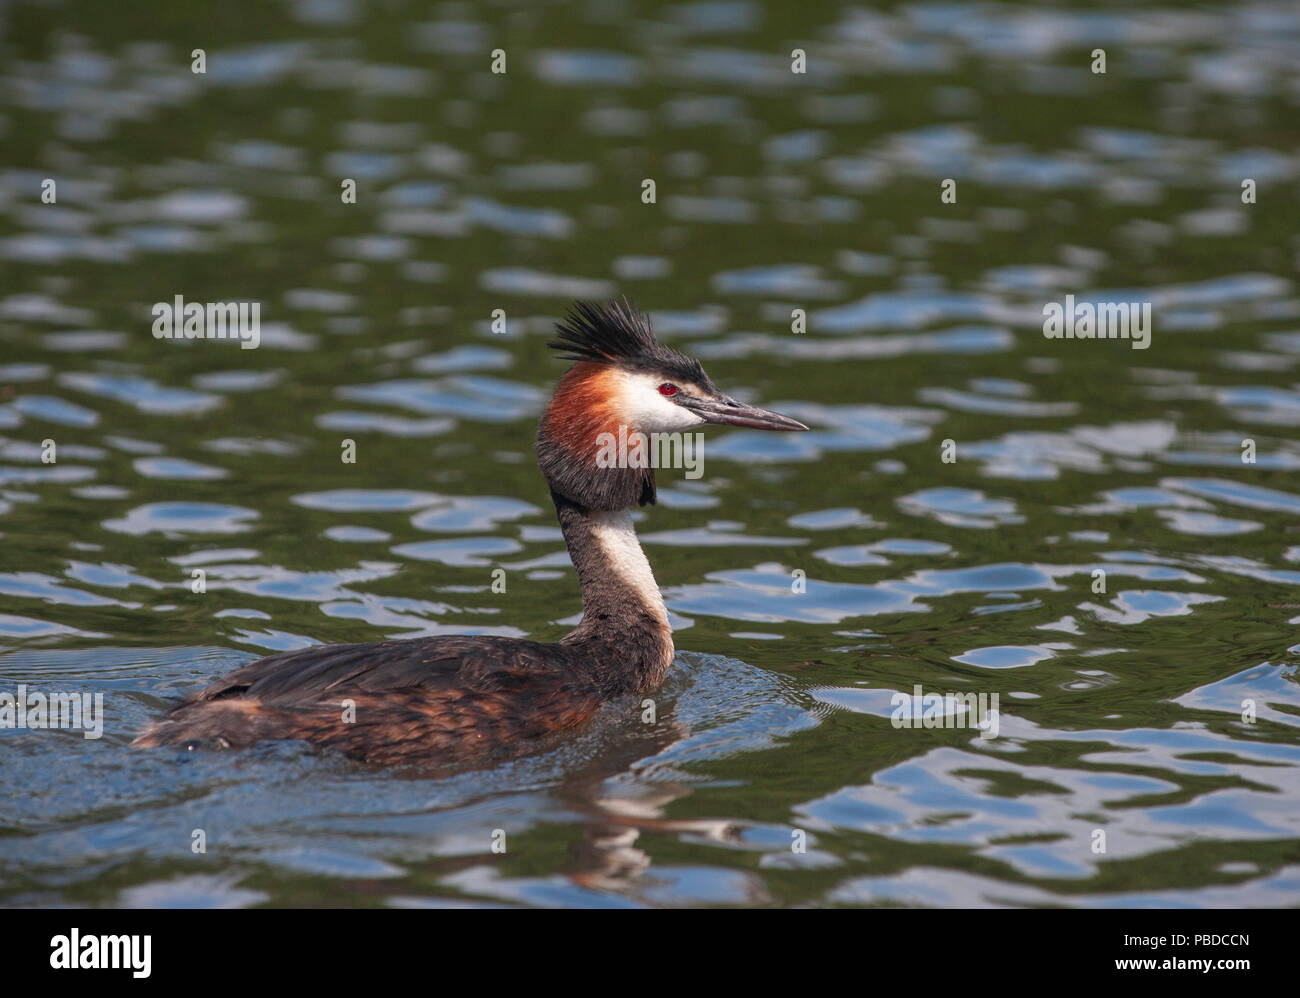 adult male Great Crested Grebe, (Podiceps cristatus), Walthamstow Reservoirs, London, United Kingdom, British Isles Stock Photo